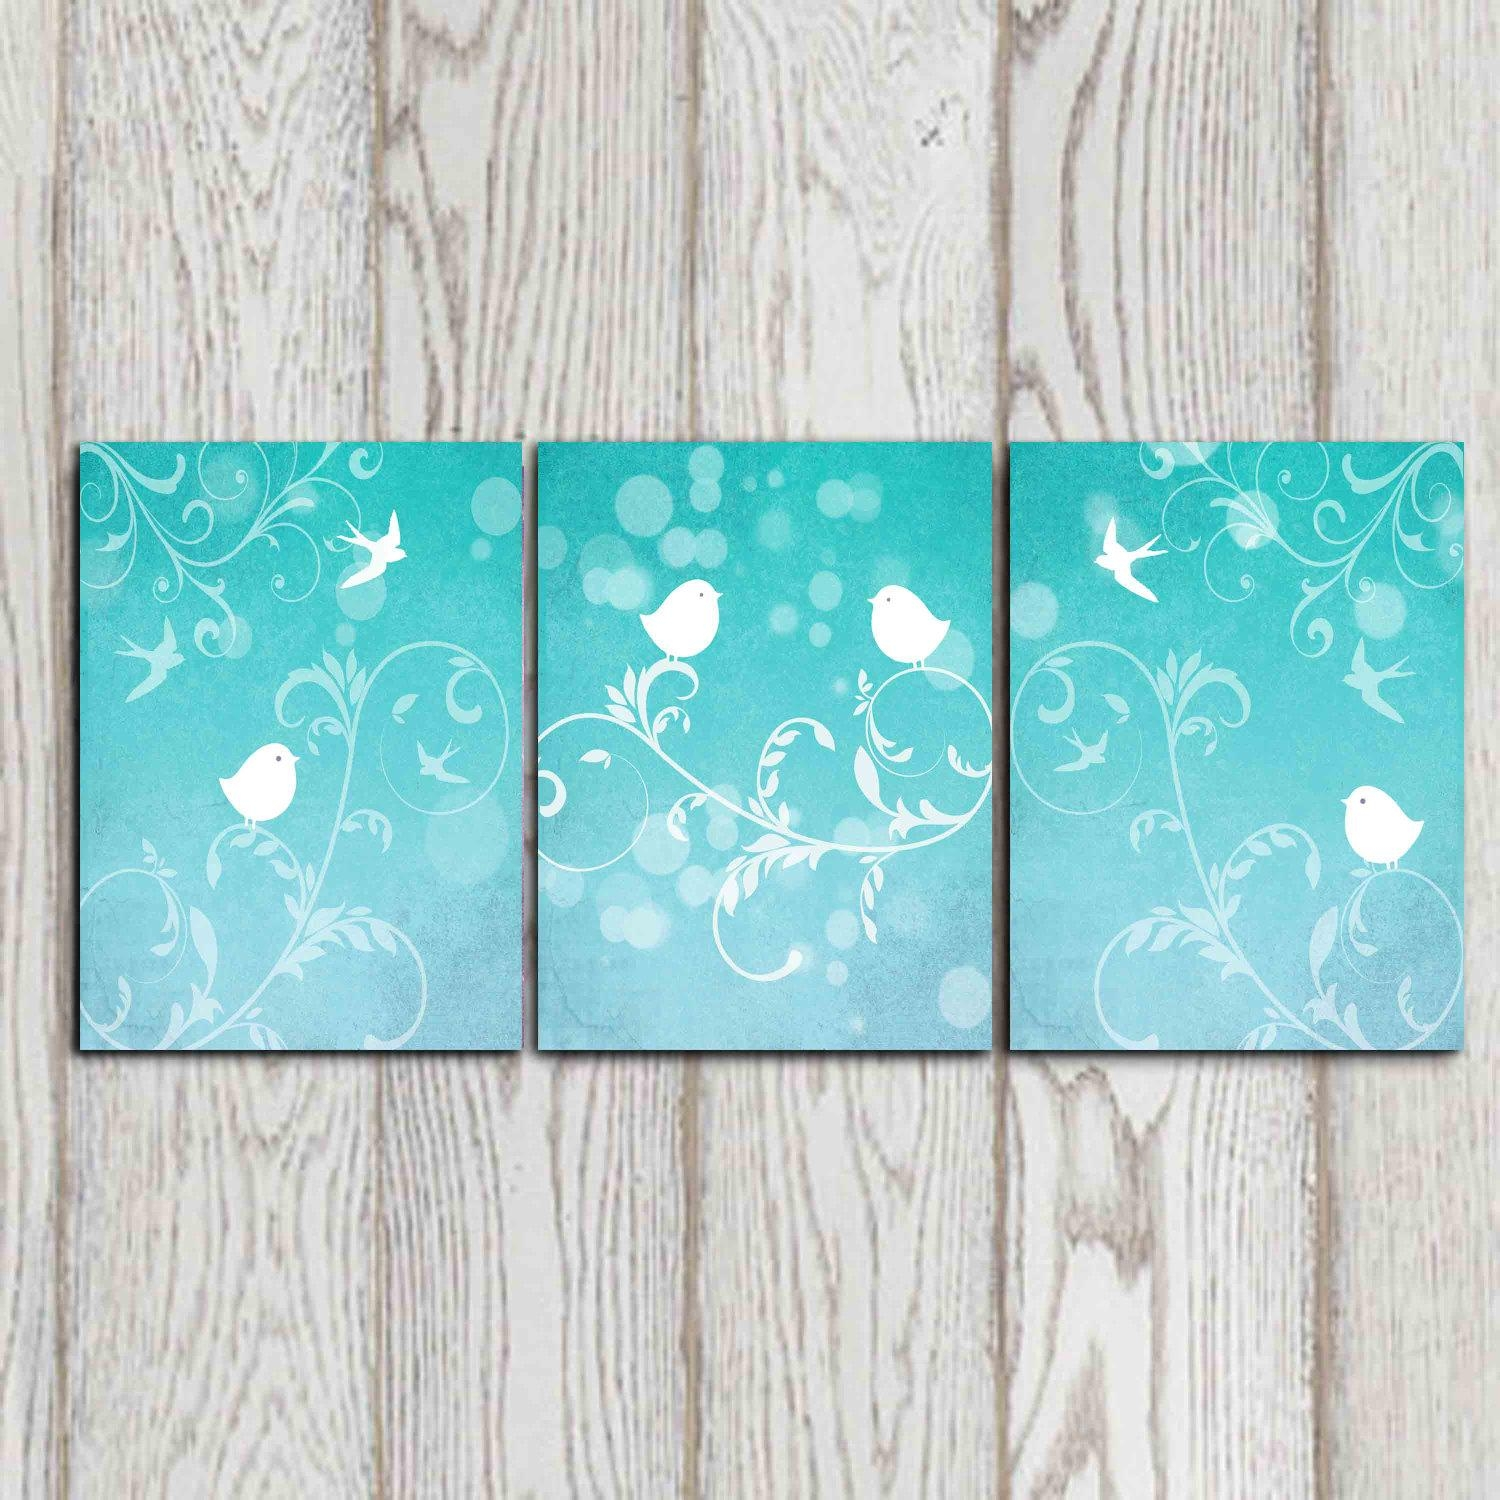 Cool Aqua Wall Art Aqua Sea Grass Aqua Aqua Colour Wall Art Aqua With Regard To Teal And Gold Wall Art (View 14 of 20)